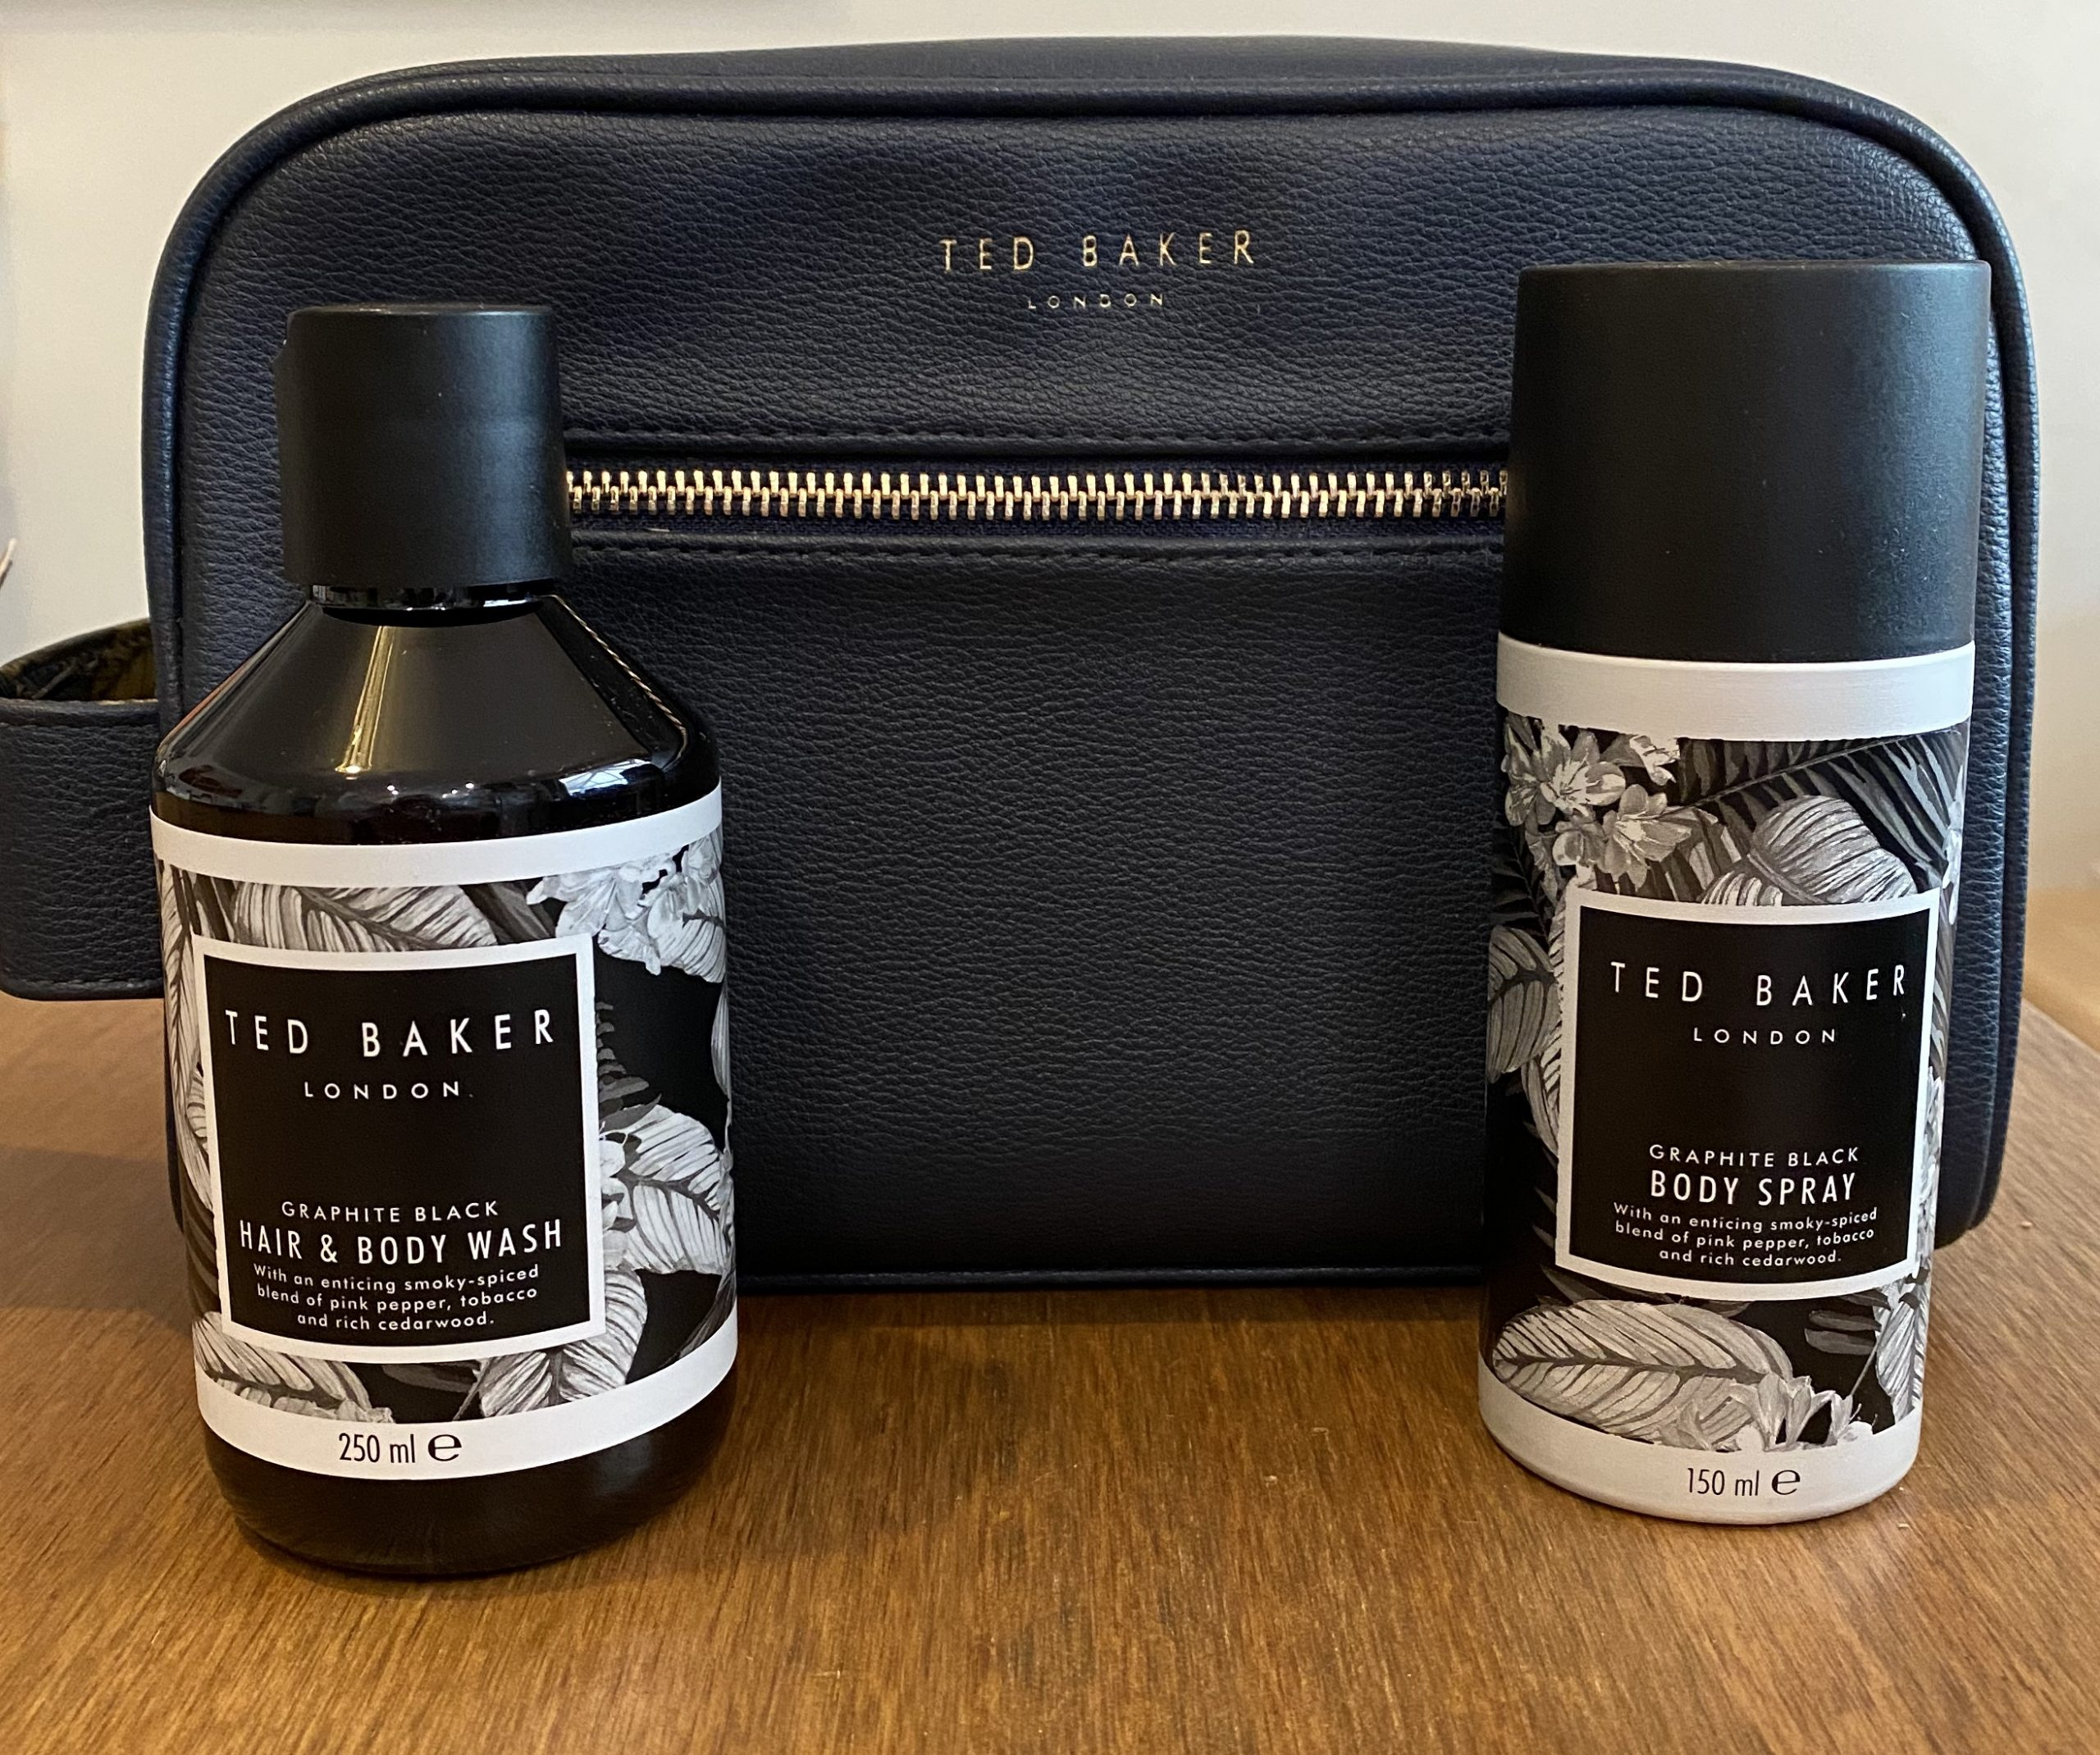 Ted Baker Bath and Body Washbag Gift Review – What's Good To Do